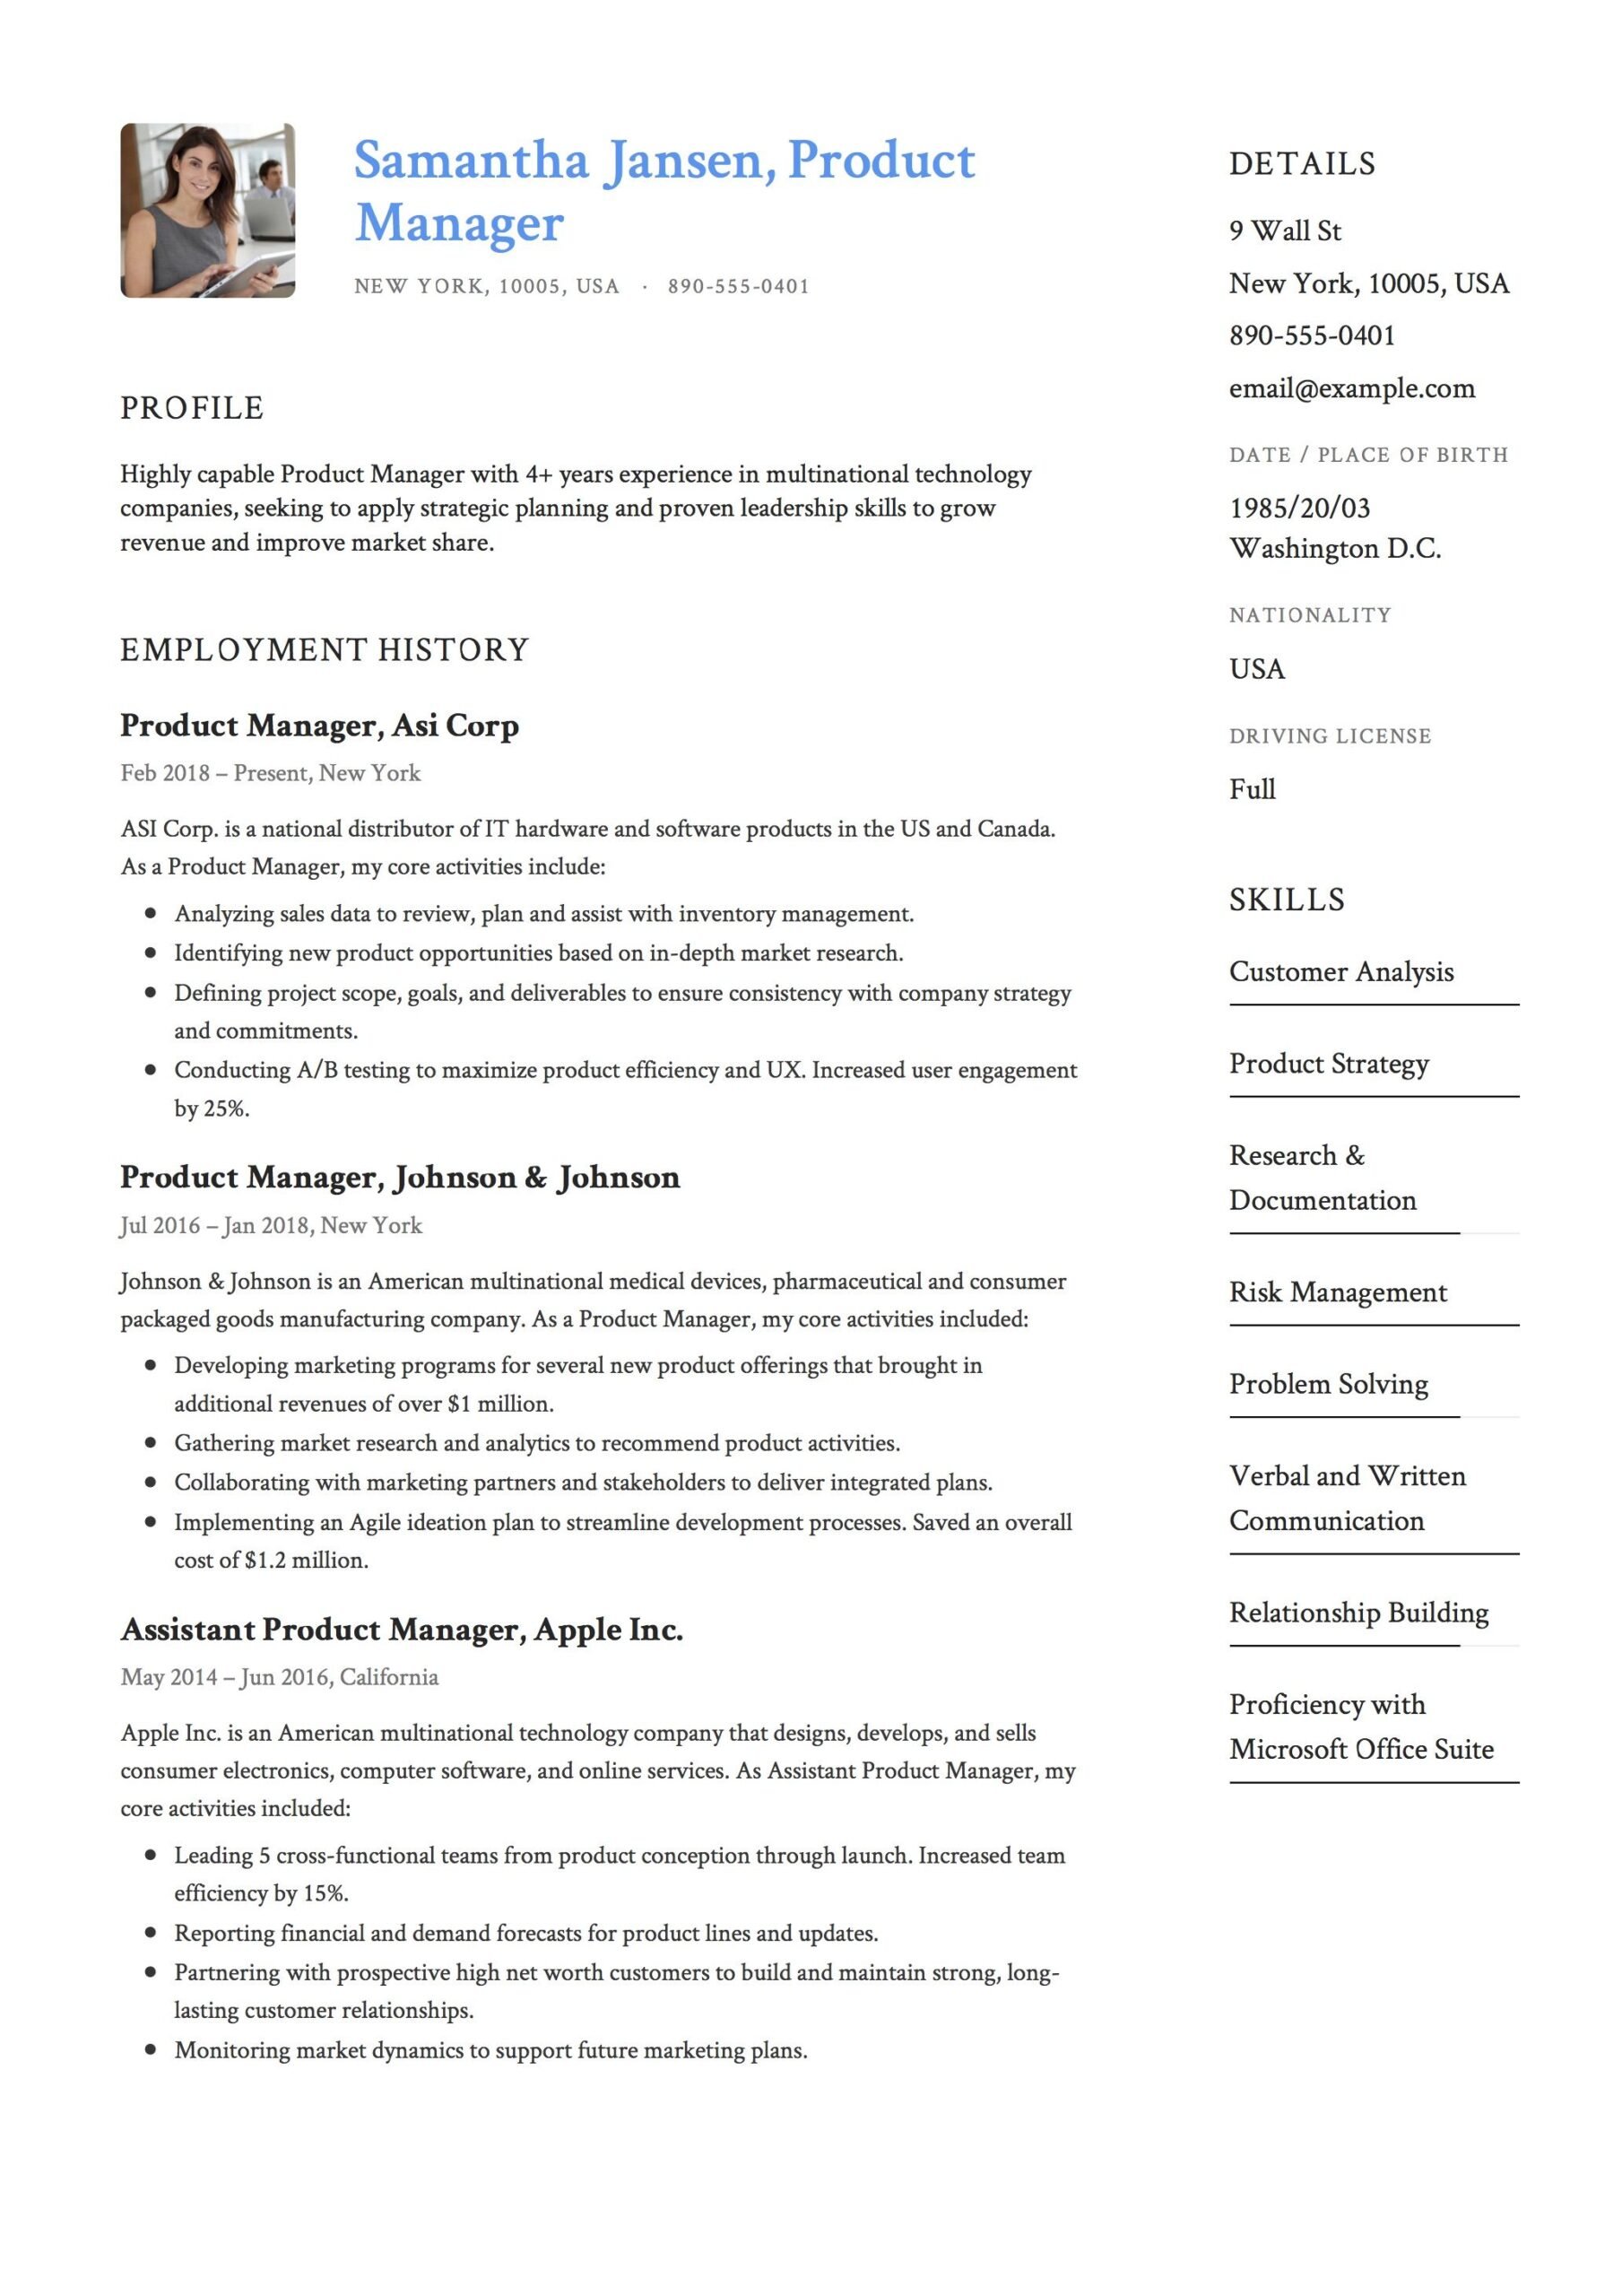 product manager resume sample template example cv formal design examples guide personal Resume Product Manager Resume Sample